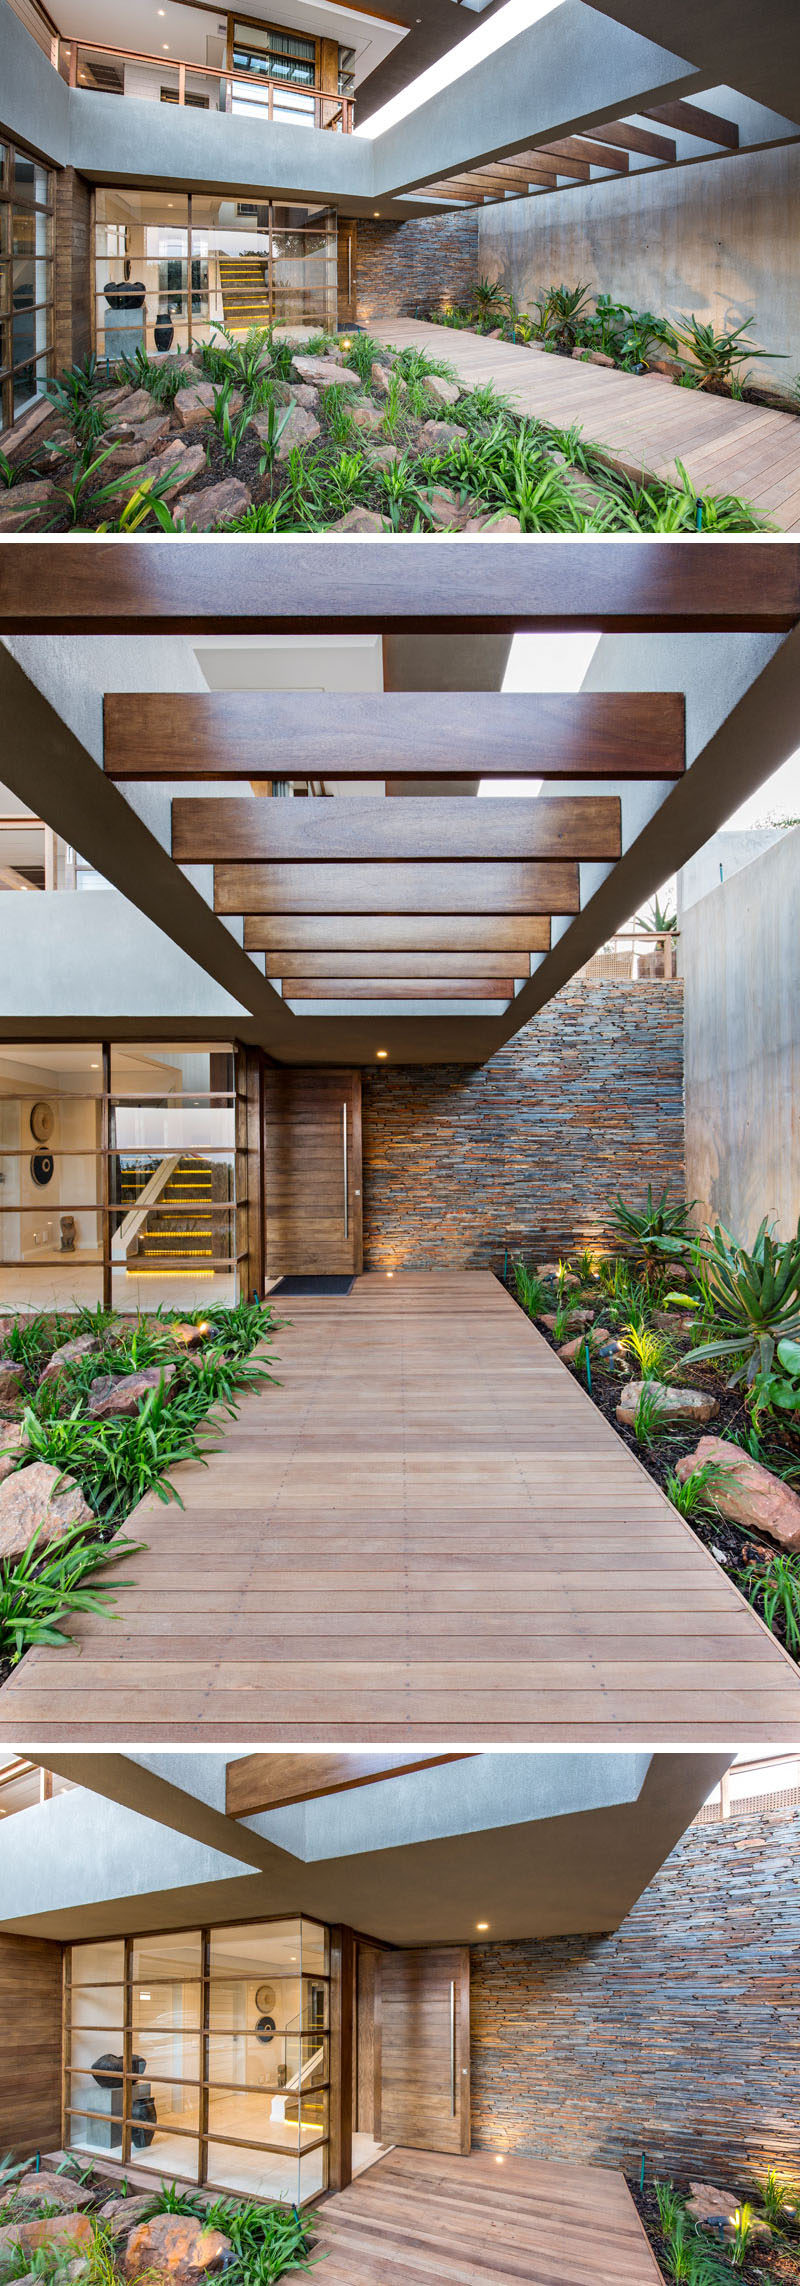 At the front of this modern house and off to the side, there's a wood walkway surrounded by plants and rocks, that leads to the front door. #Landscaping #Architecture #FrontEntrance #ModernHouse #WoodPath